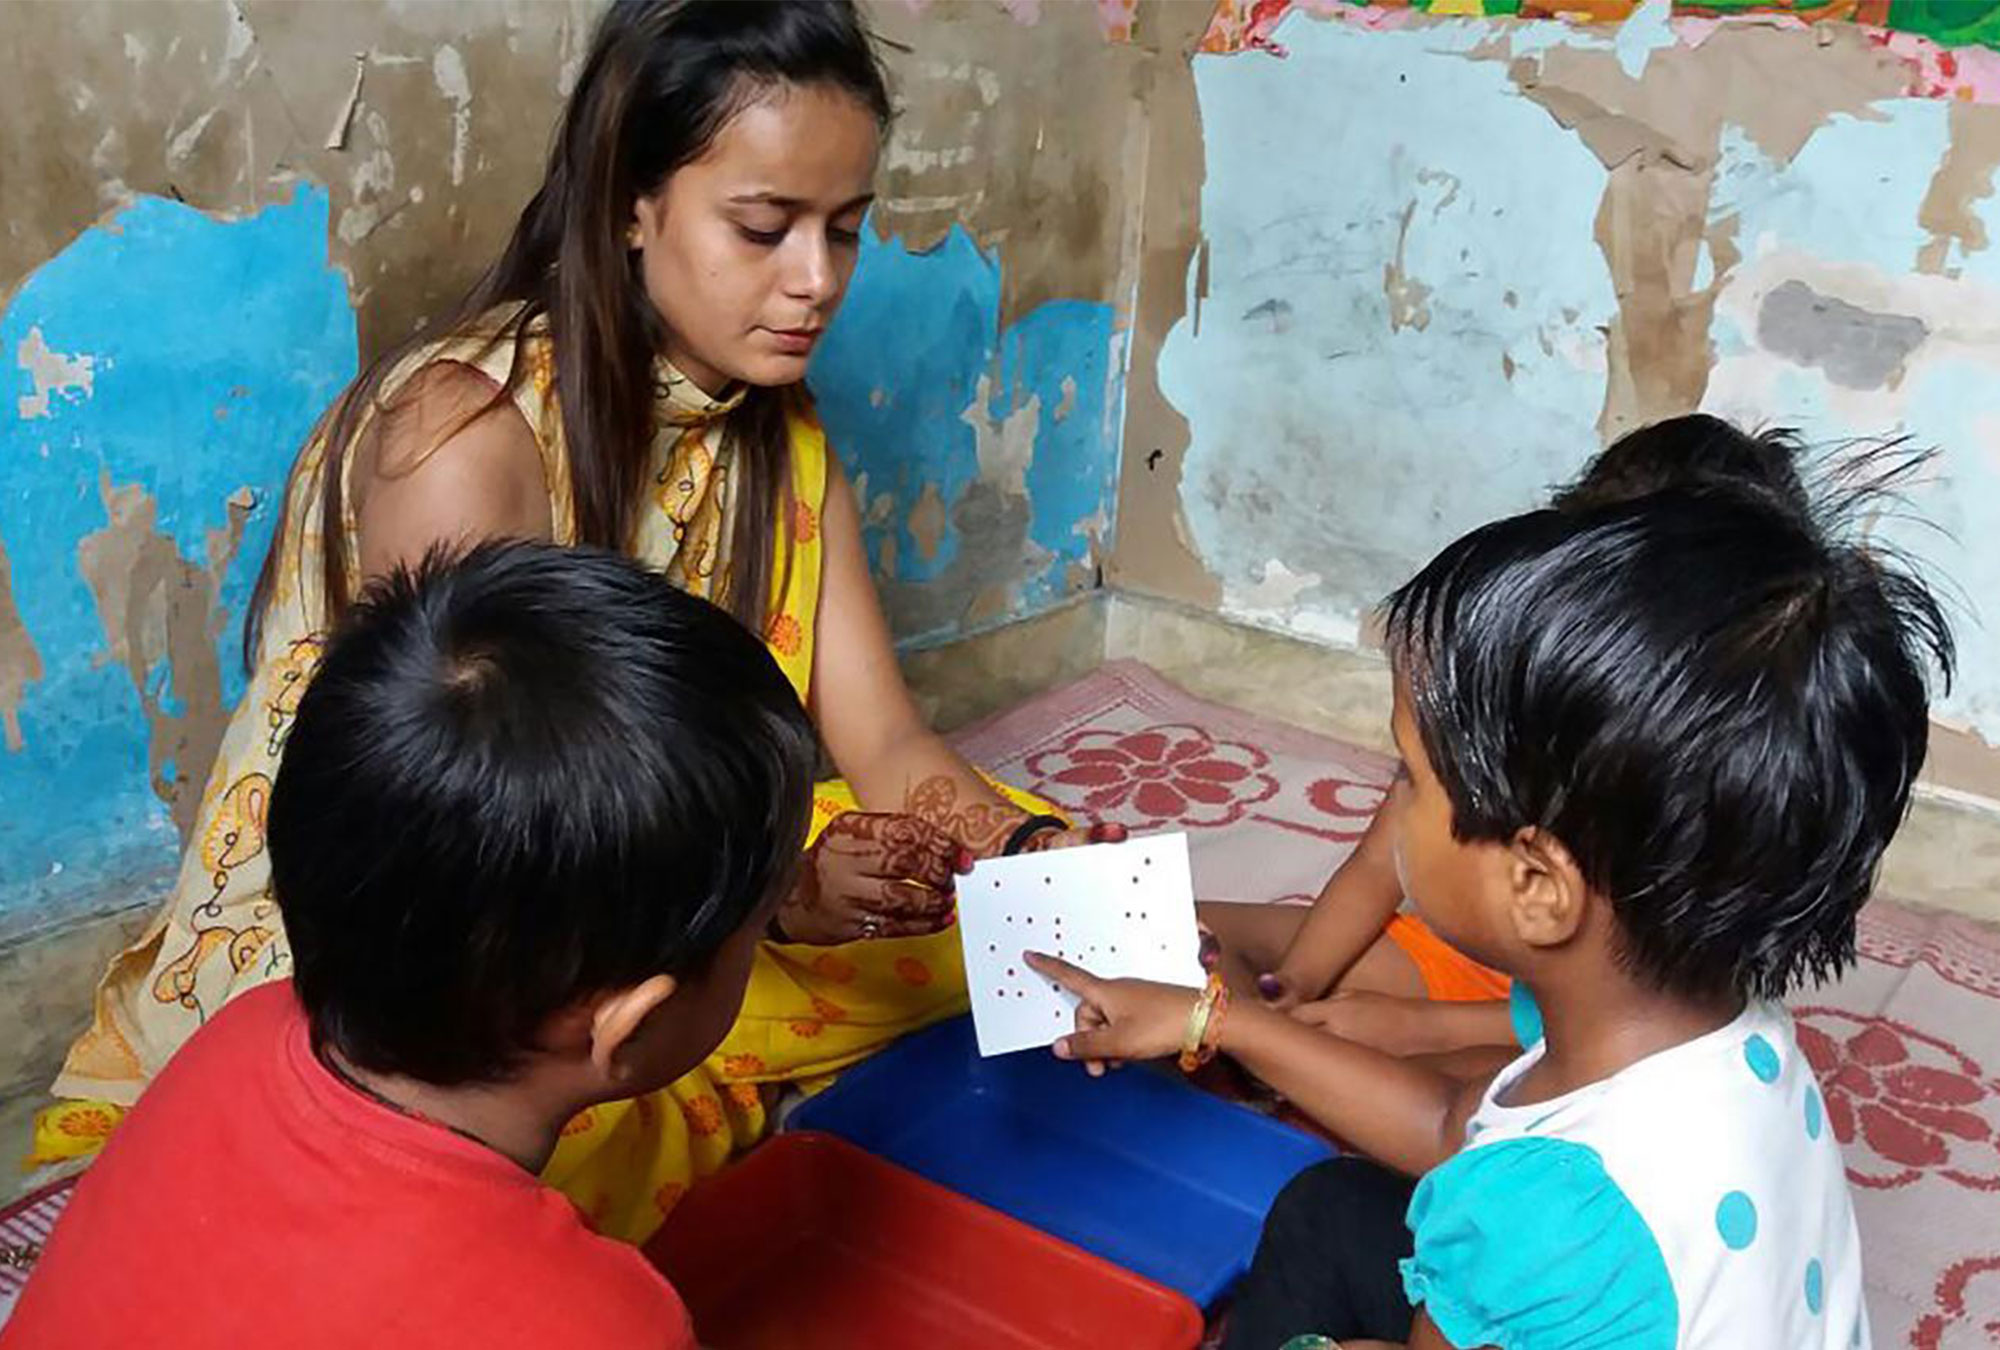 Woman shows games to children